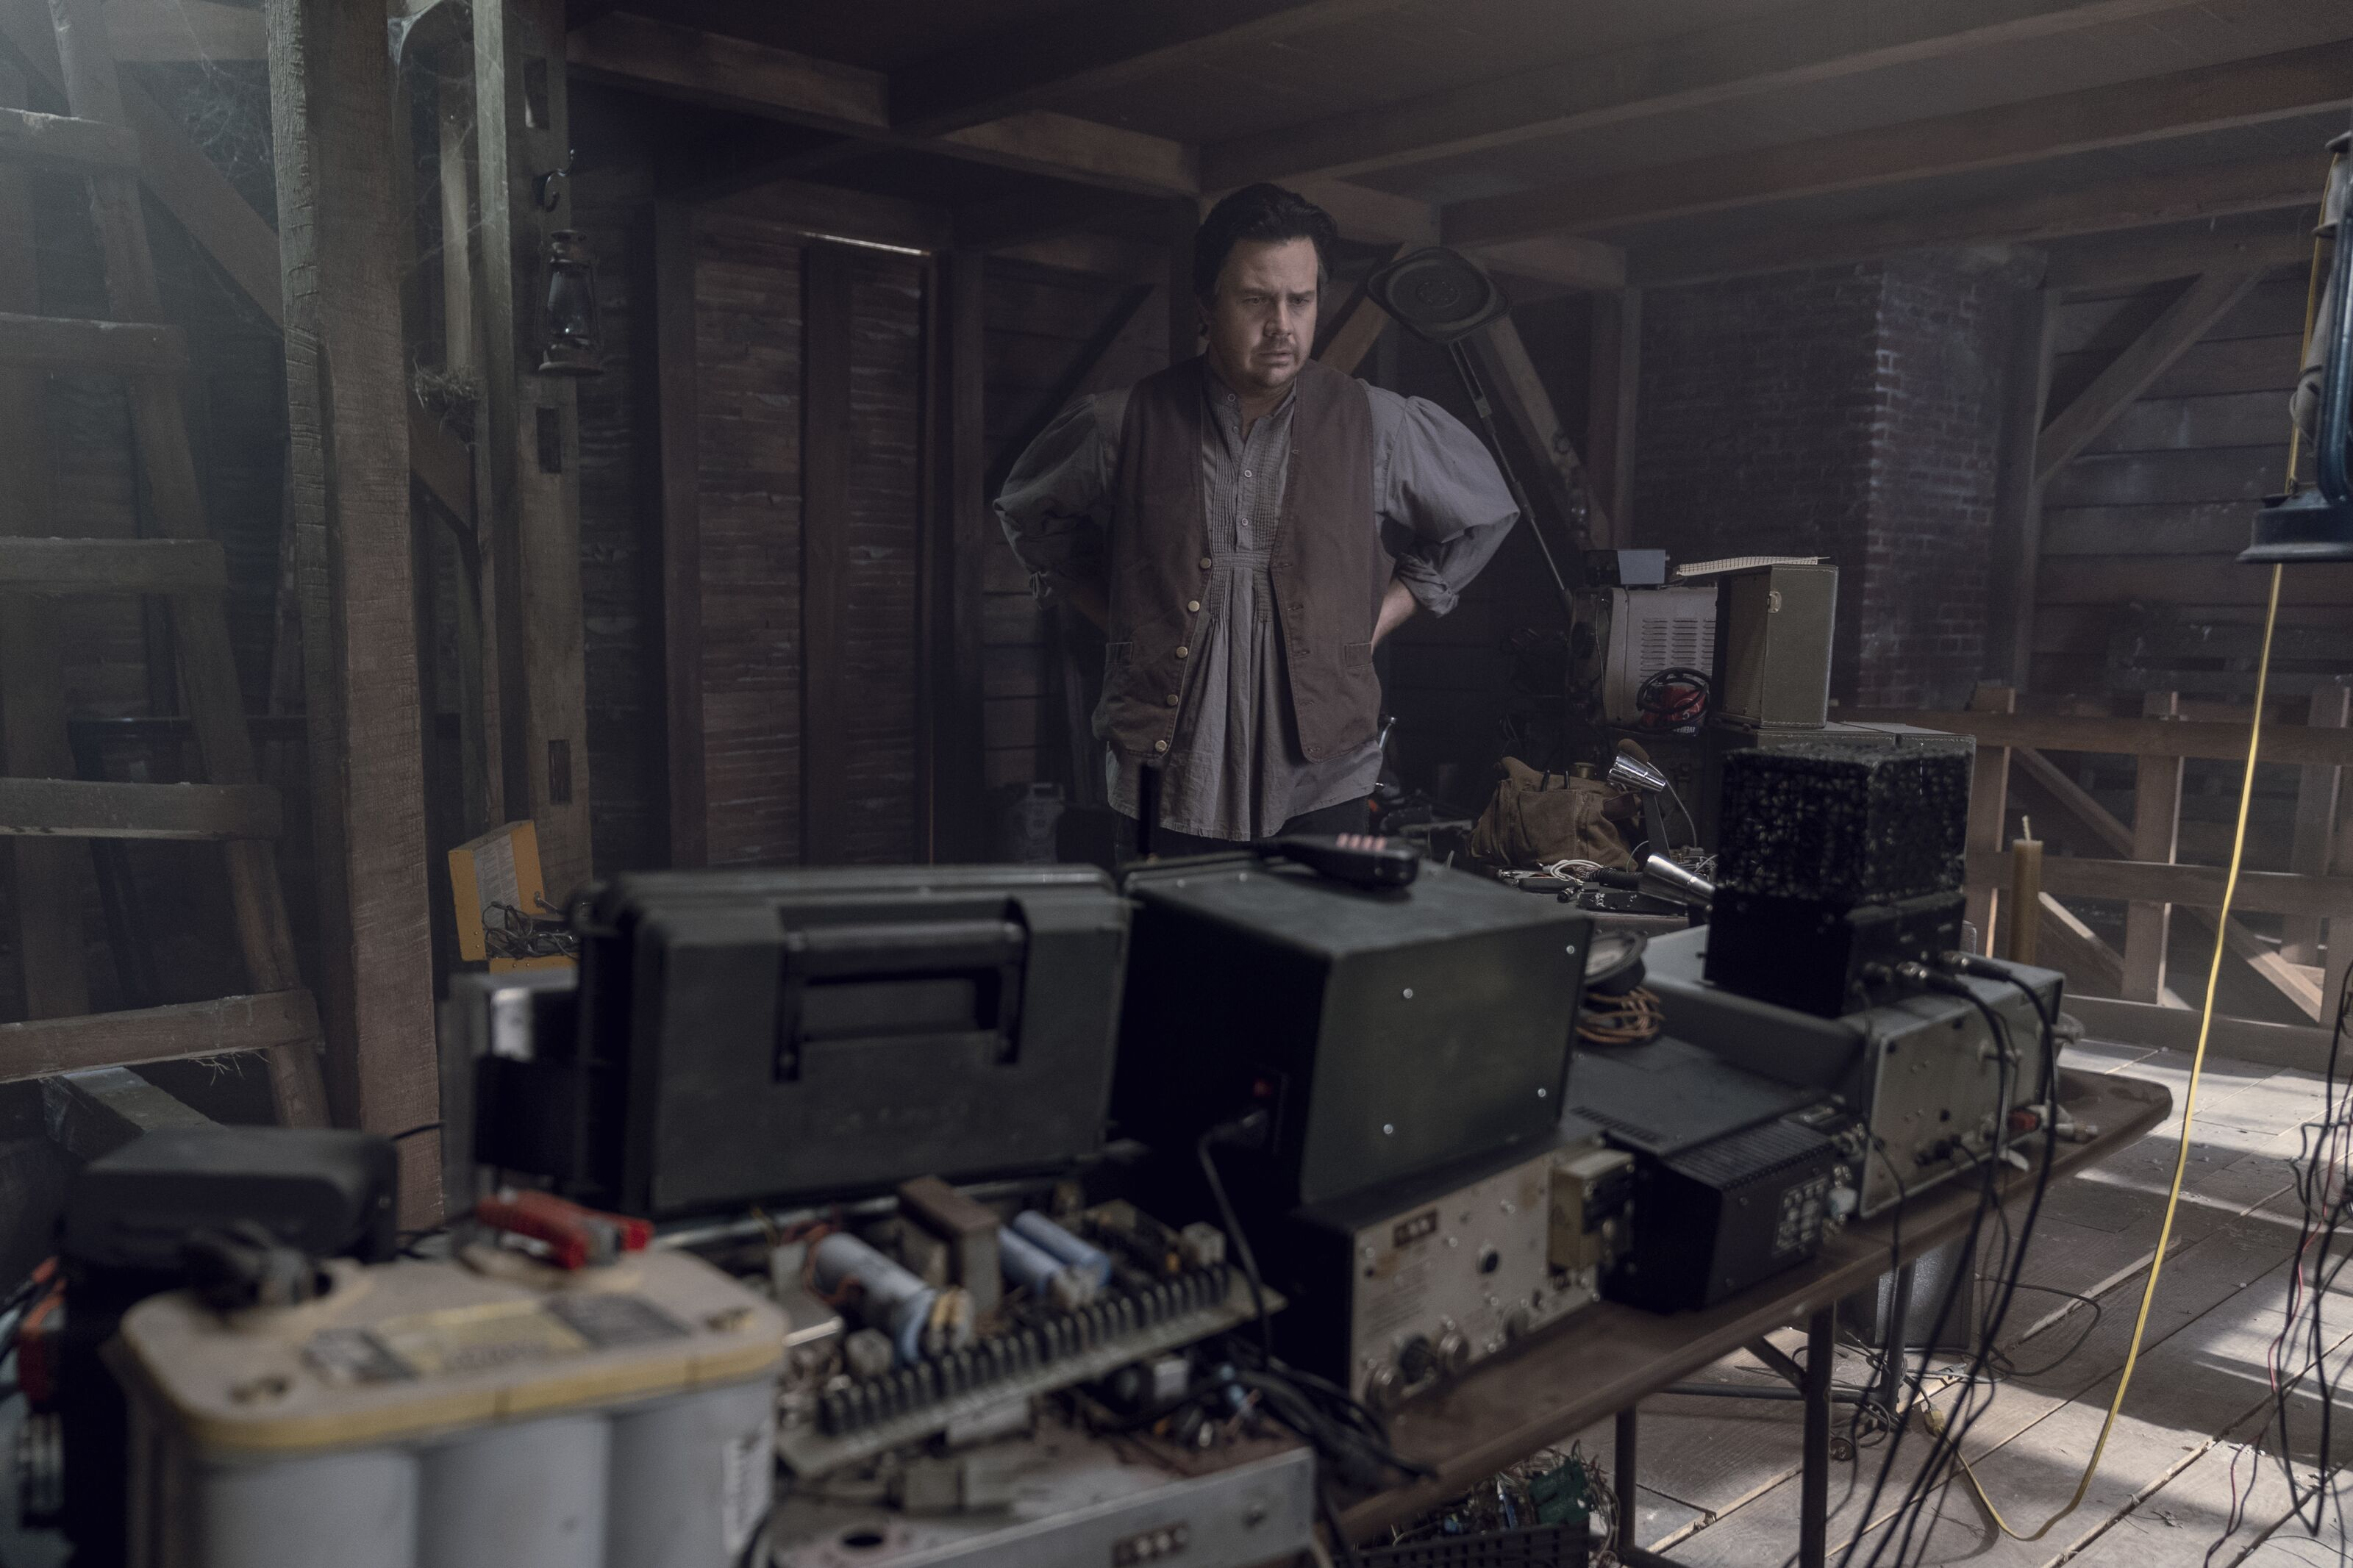 5 WTF moments from The Walking Dead episode 1006